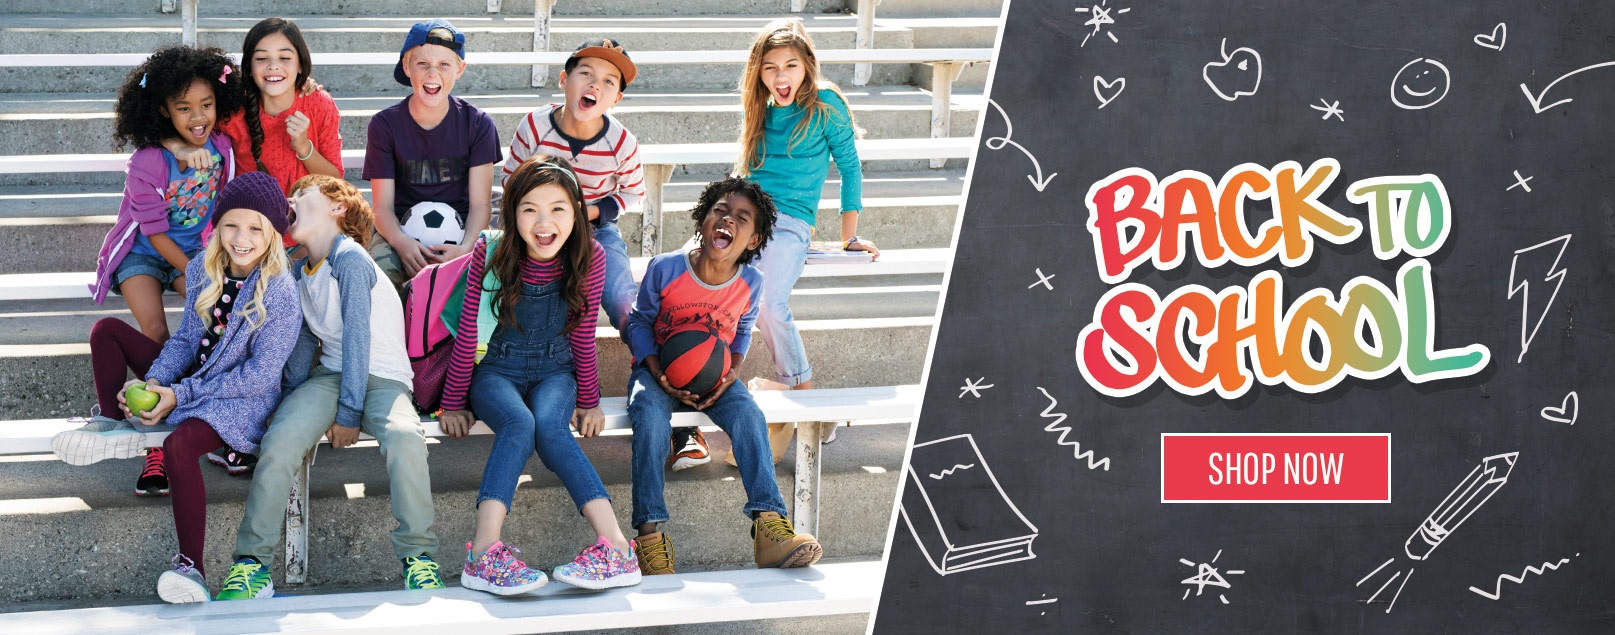 Shop back to school boys and girls styles.